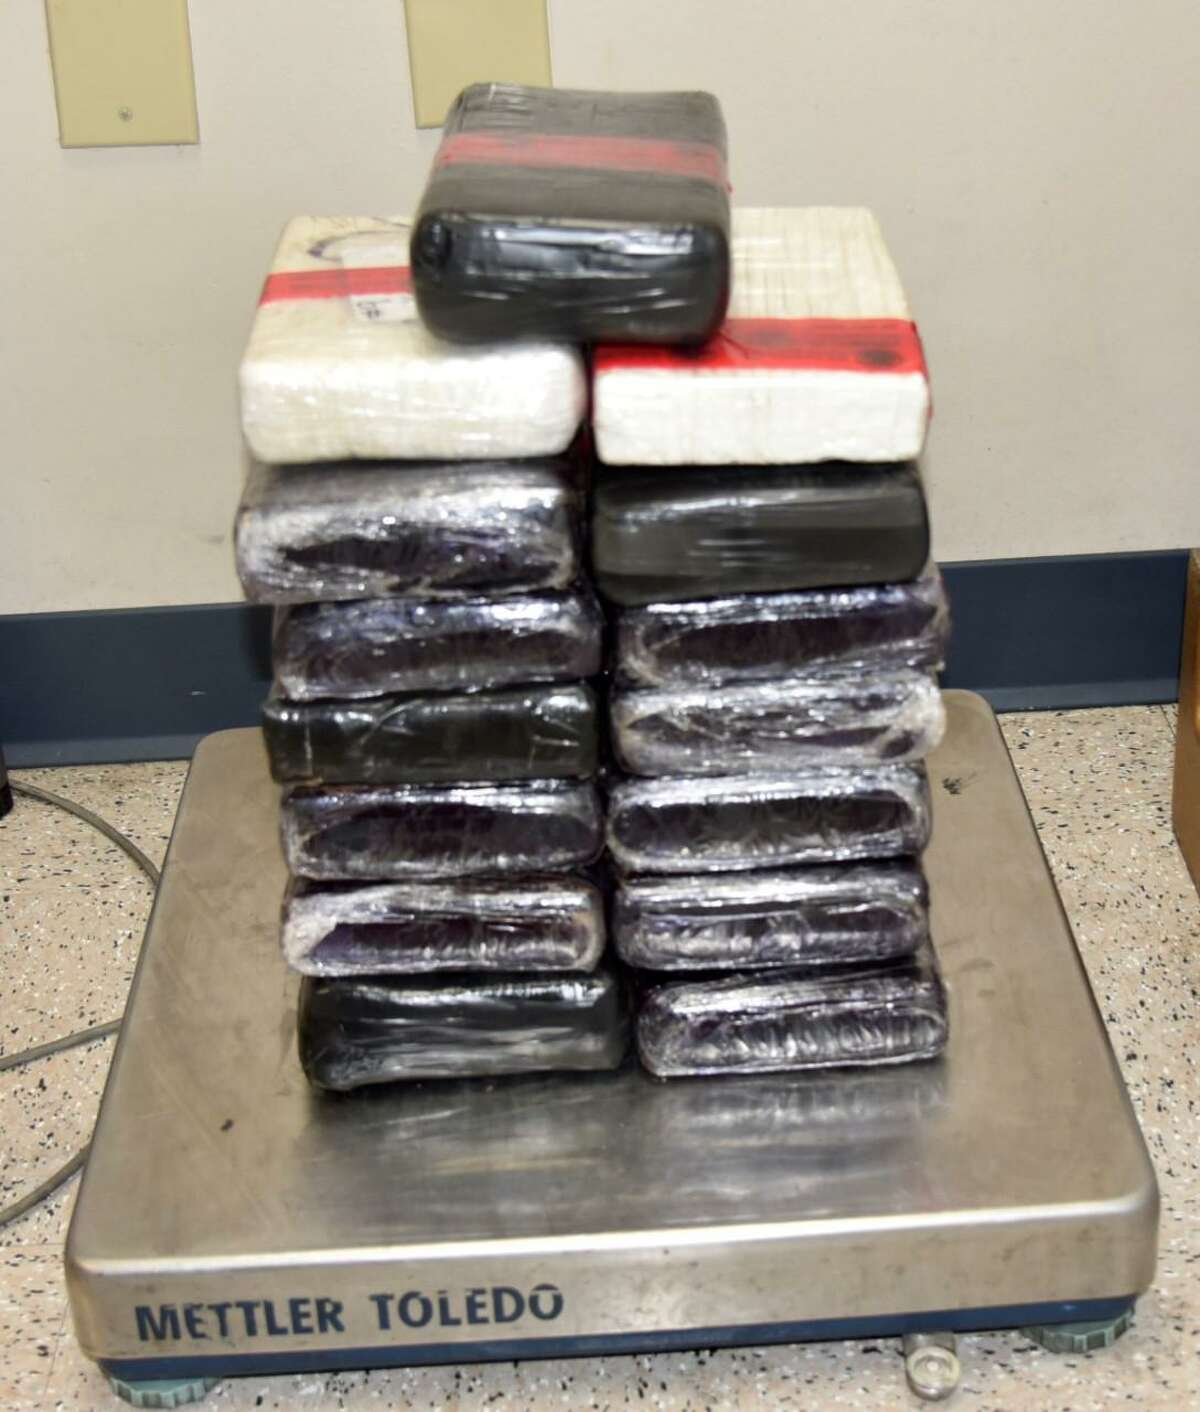 This is one of three drug seizures that occurred over the weekend at the World Trade Bridge. Pictured are 37 pounds of cocaine.